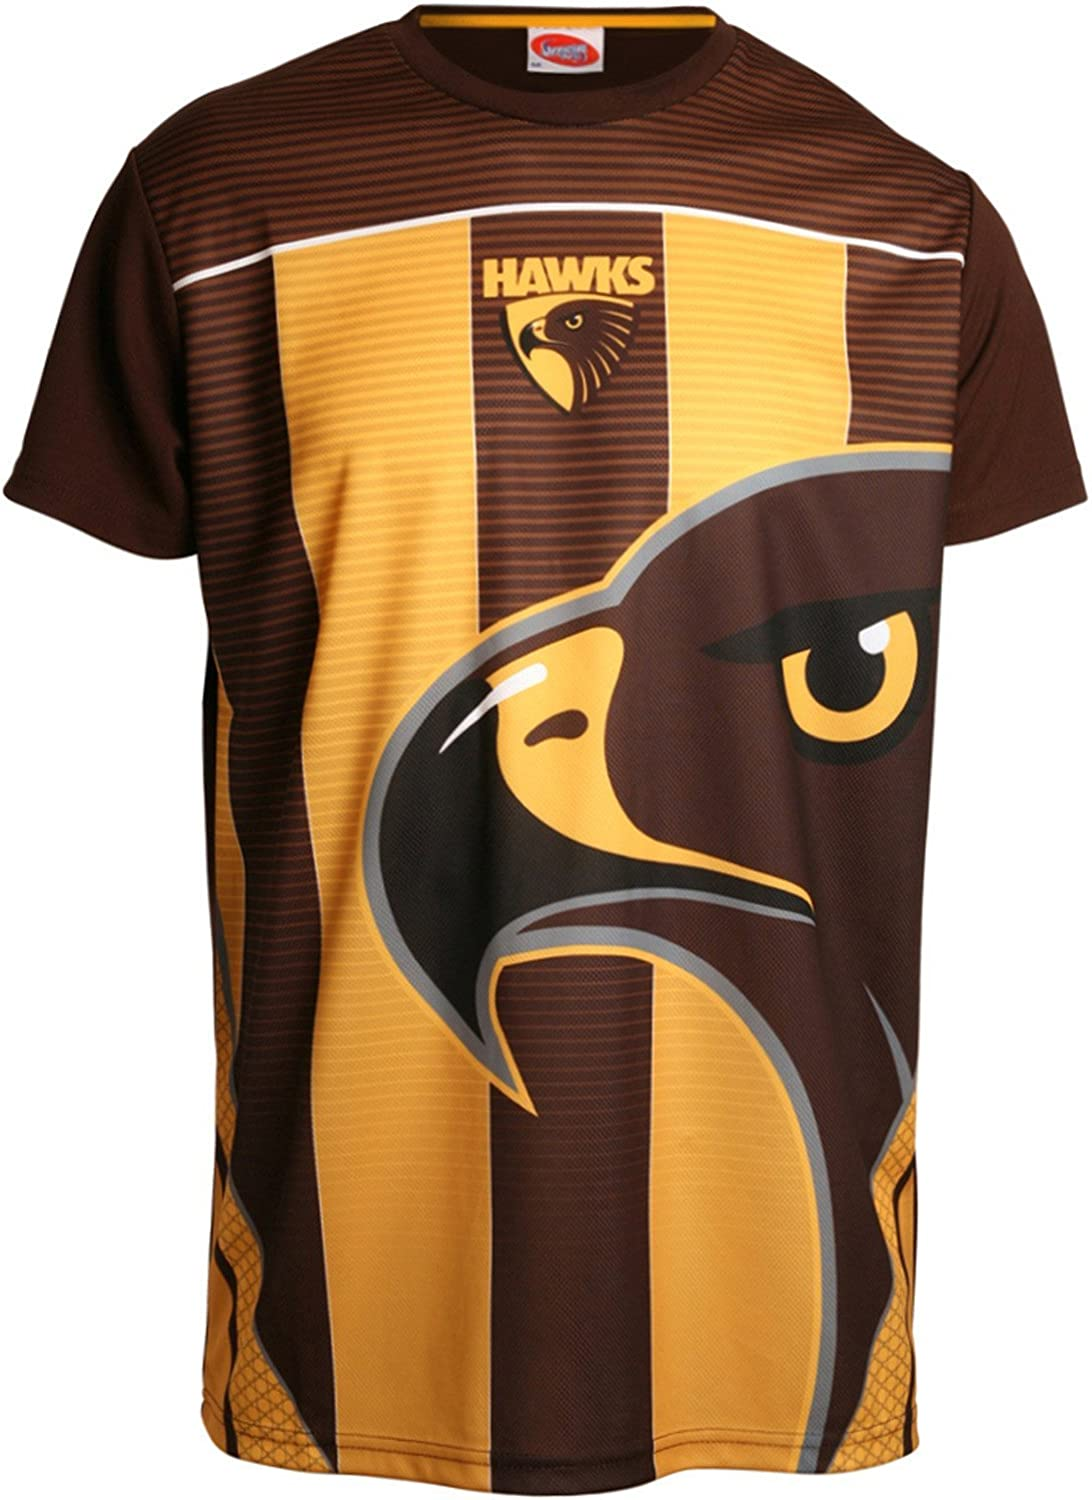 Hawthorn Hawks AFL Footy Mens Premium Training Tee